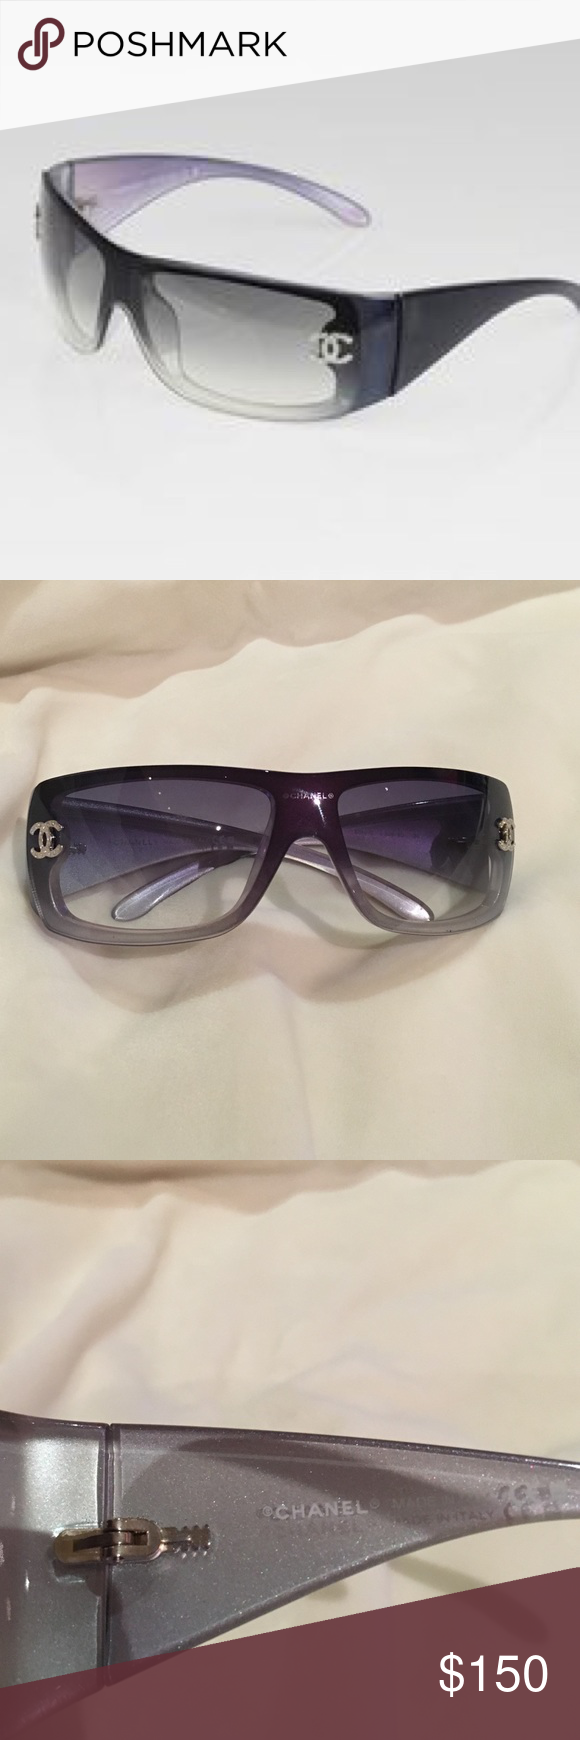 9e9ca5a19024 Chanel 5088B Blue Sunglasses with Swarovski CCs Shield style sunglasses.  Authentic. With case. No scratches and all crystals in place on the Chanel  symbols.